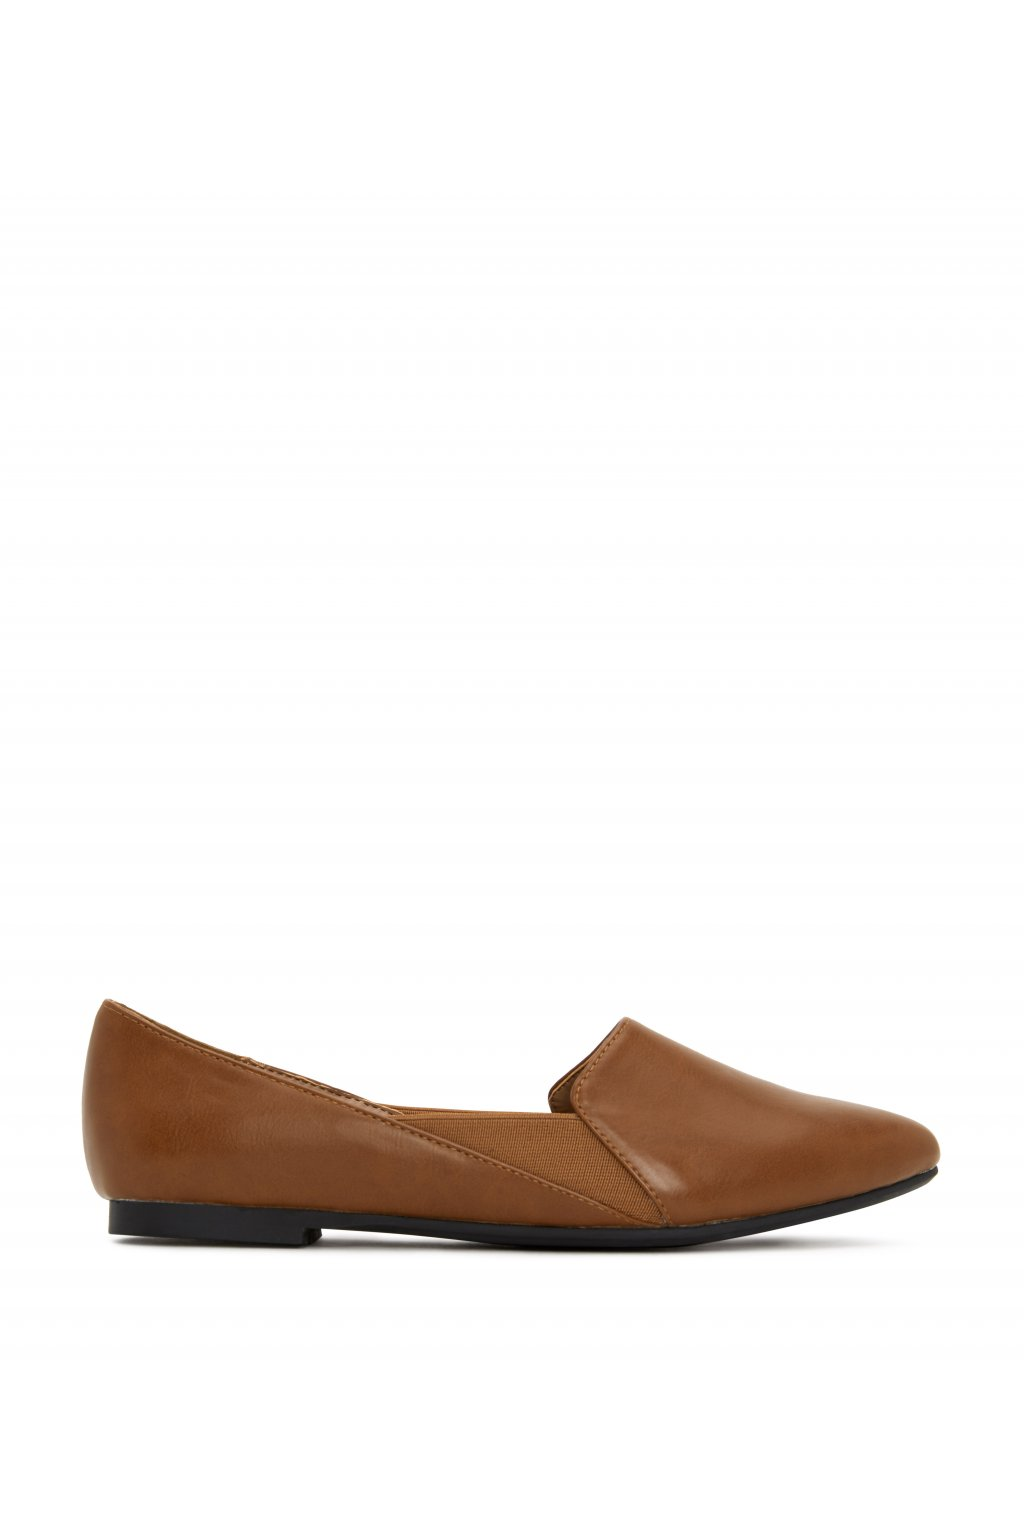 ss20 shoes westmount chili 1